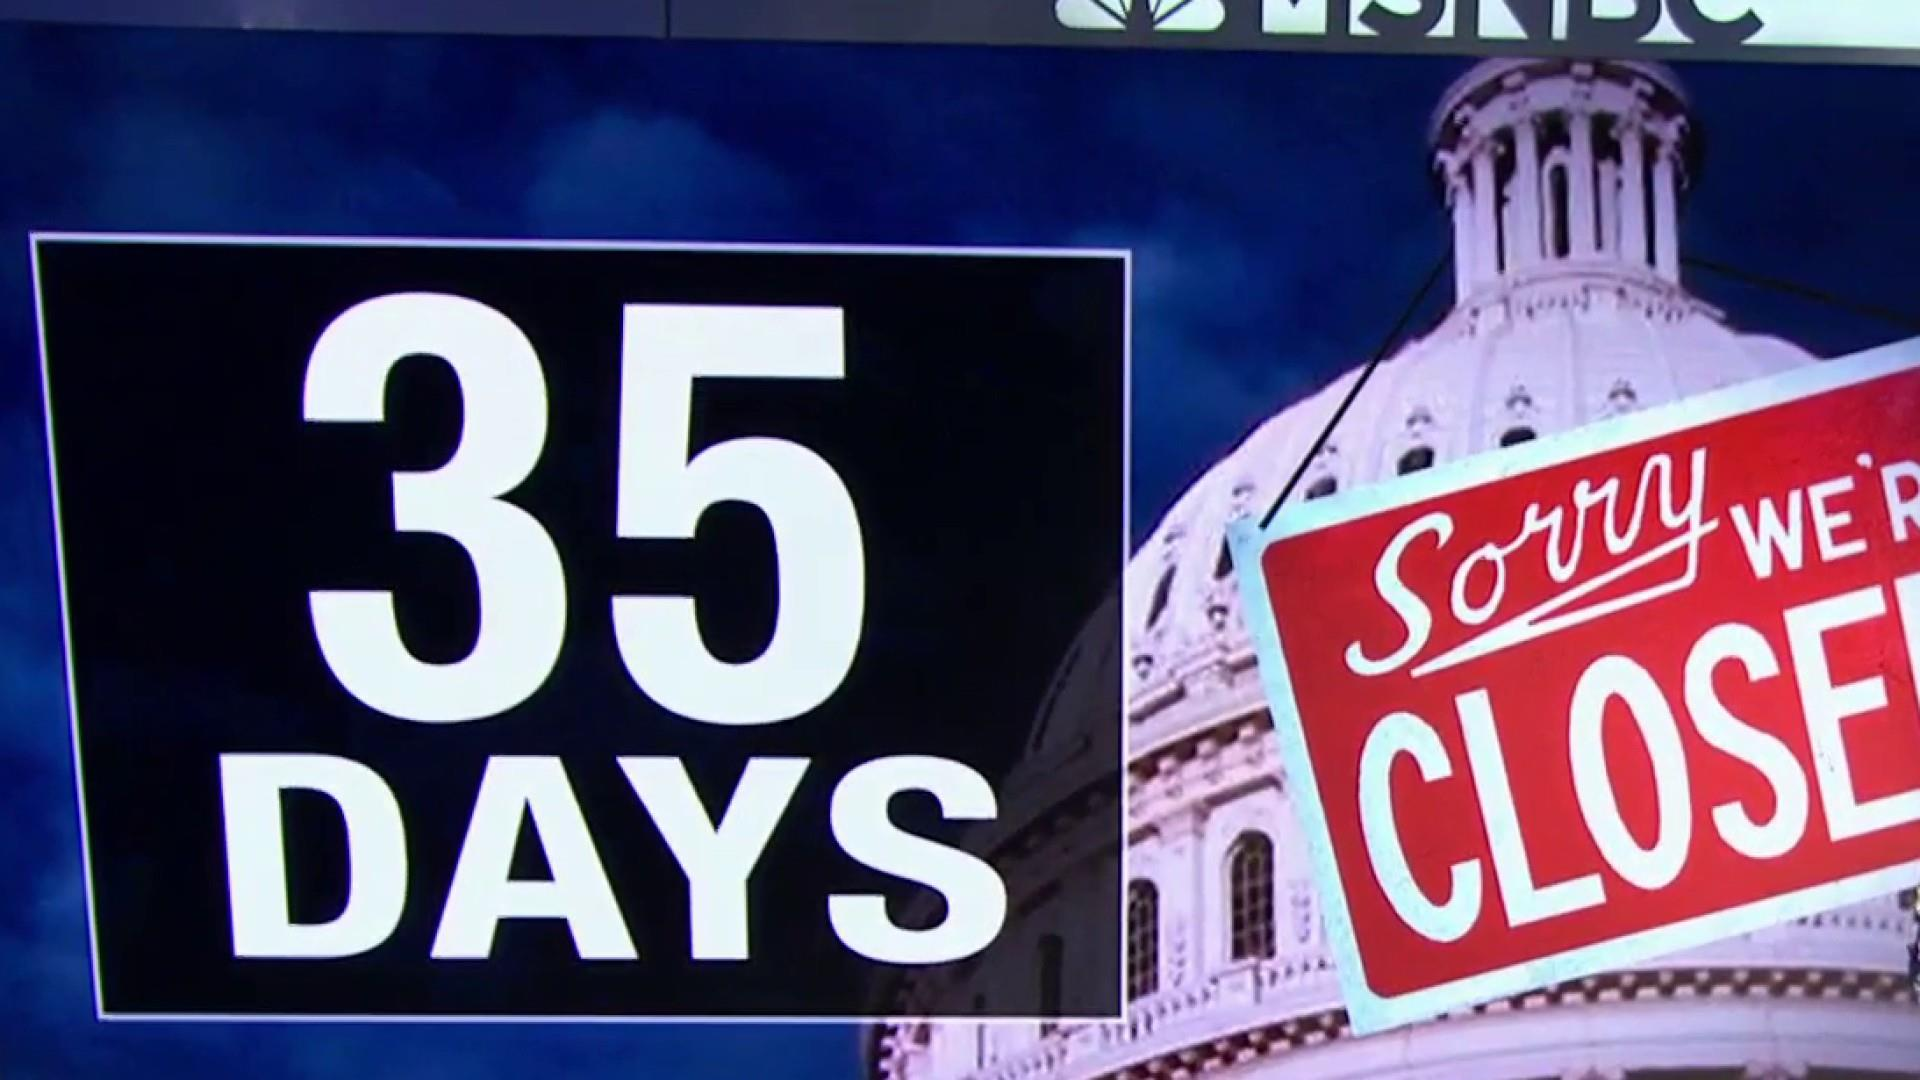 Joy Reid: Trump shut the government down for 35 days. The one thing that is true is he owns it